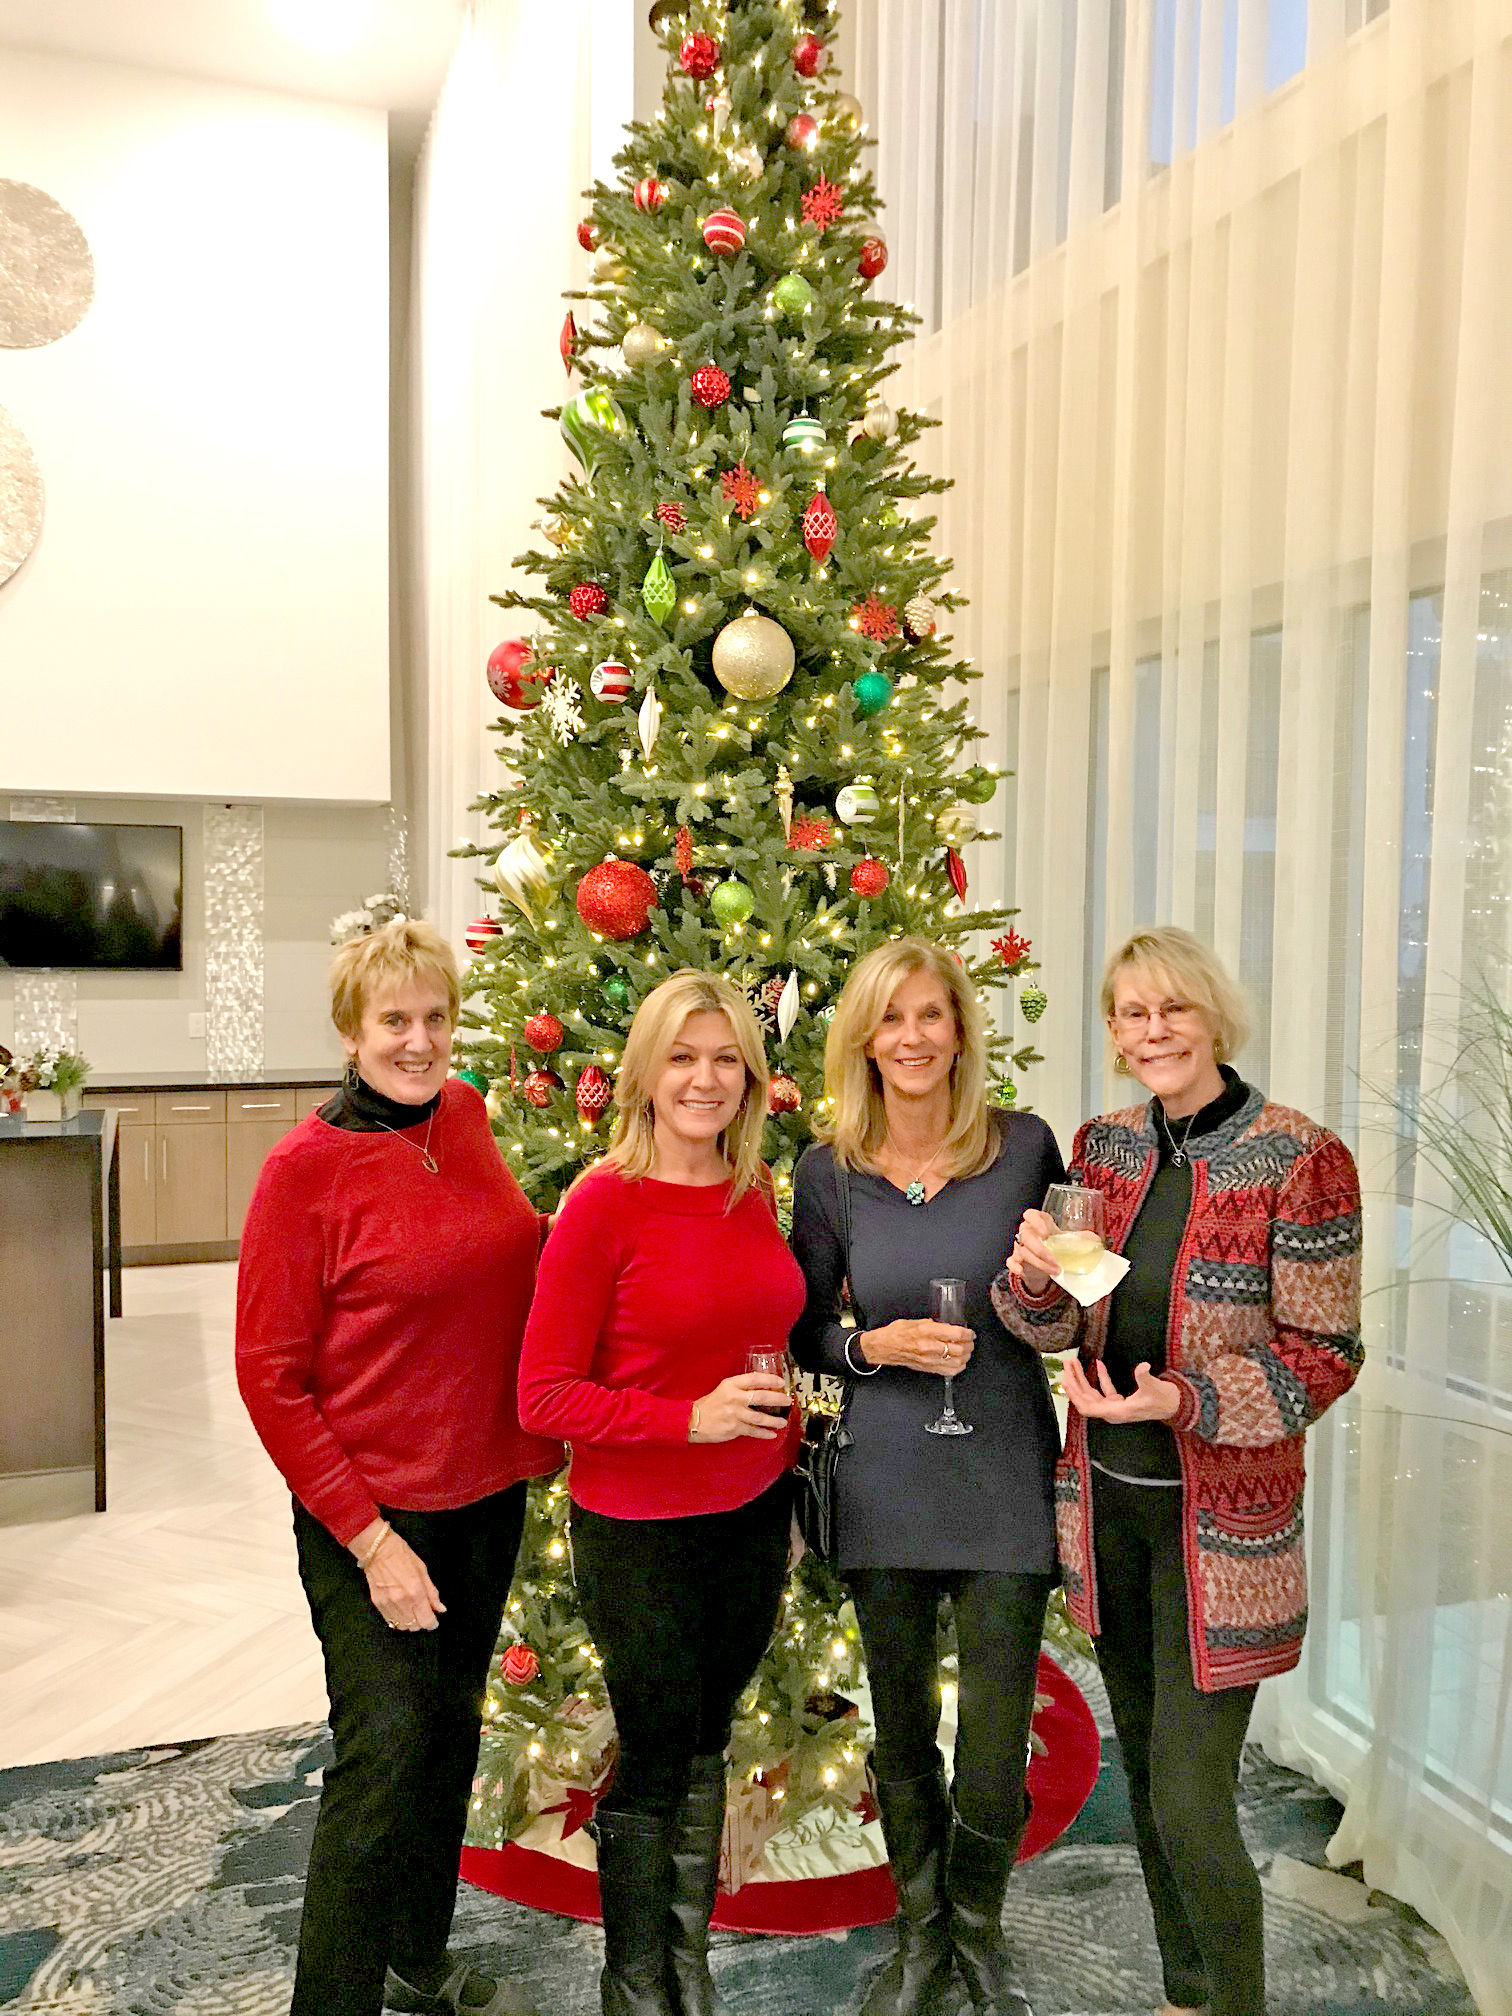 Hanging out under the gorgeously decorated tree is, from left, Vicki Rosenberg, Amy Smith, Karen Lemanske, and Katherine Chaddock.